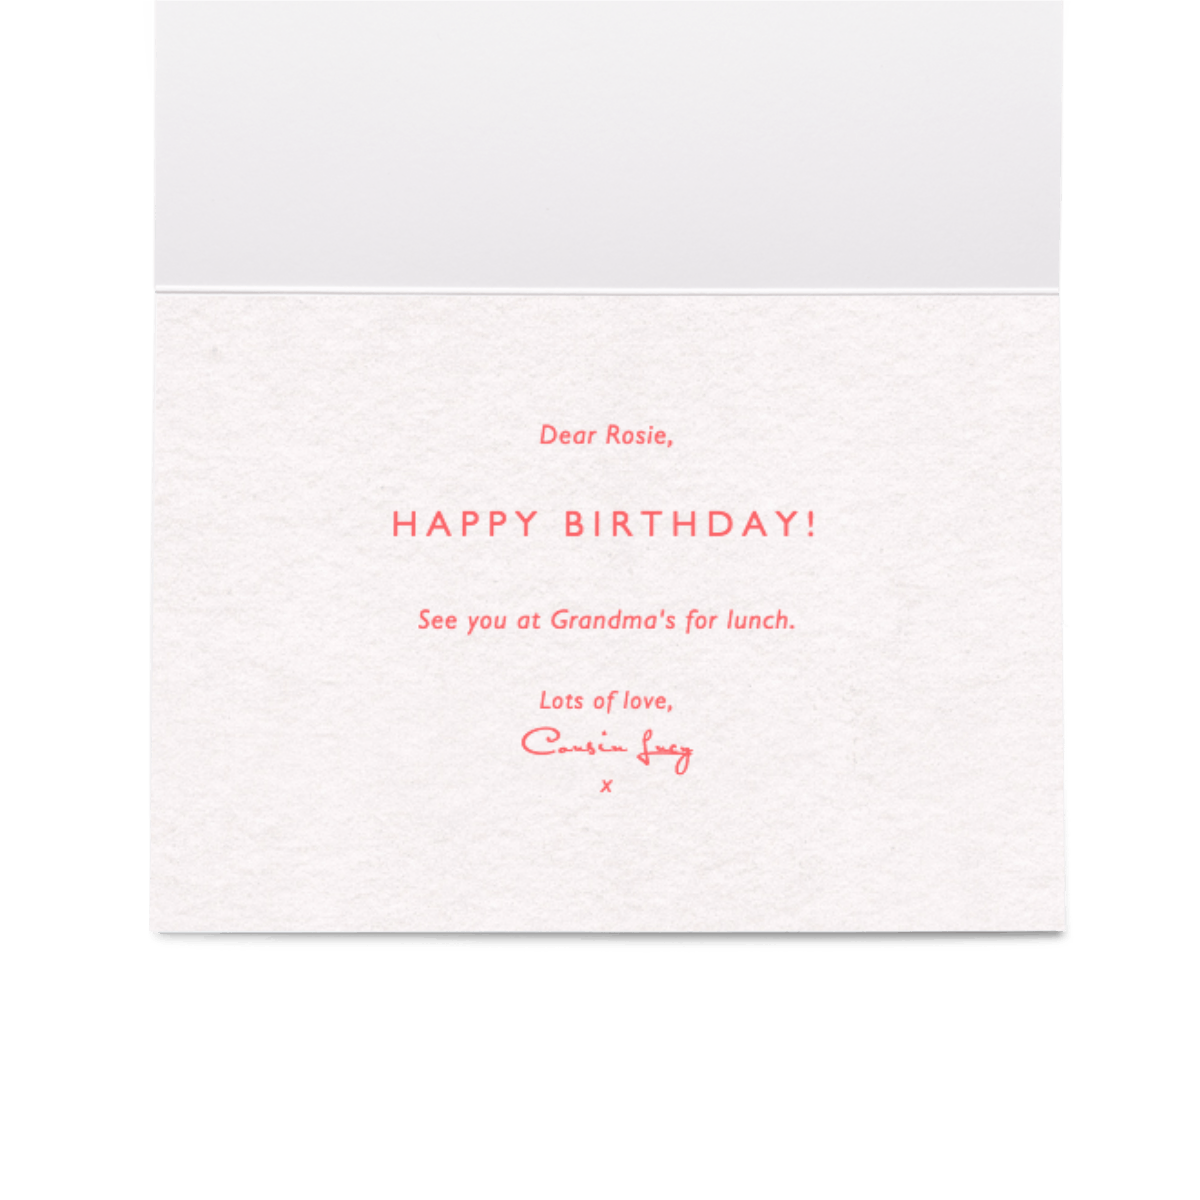 Https%3a%2f%2fwww.papier.com%2fproduct image%2f1433%2f20%2fbirthday daisies 397 inside 1453909879.png?ixlib=rb 1.1